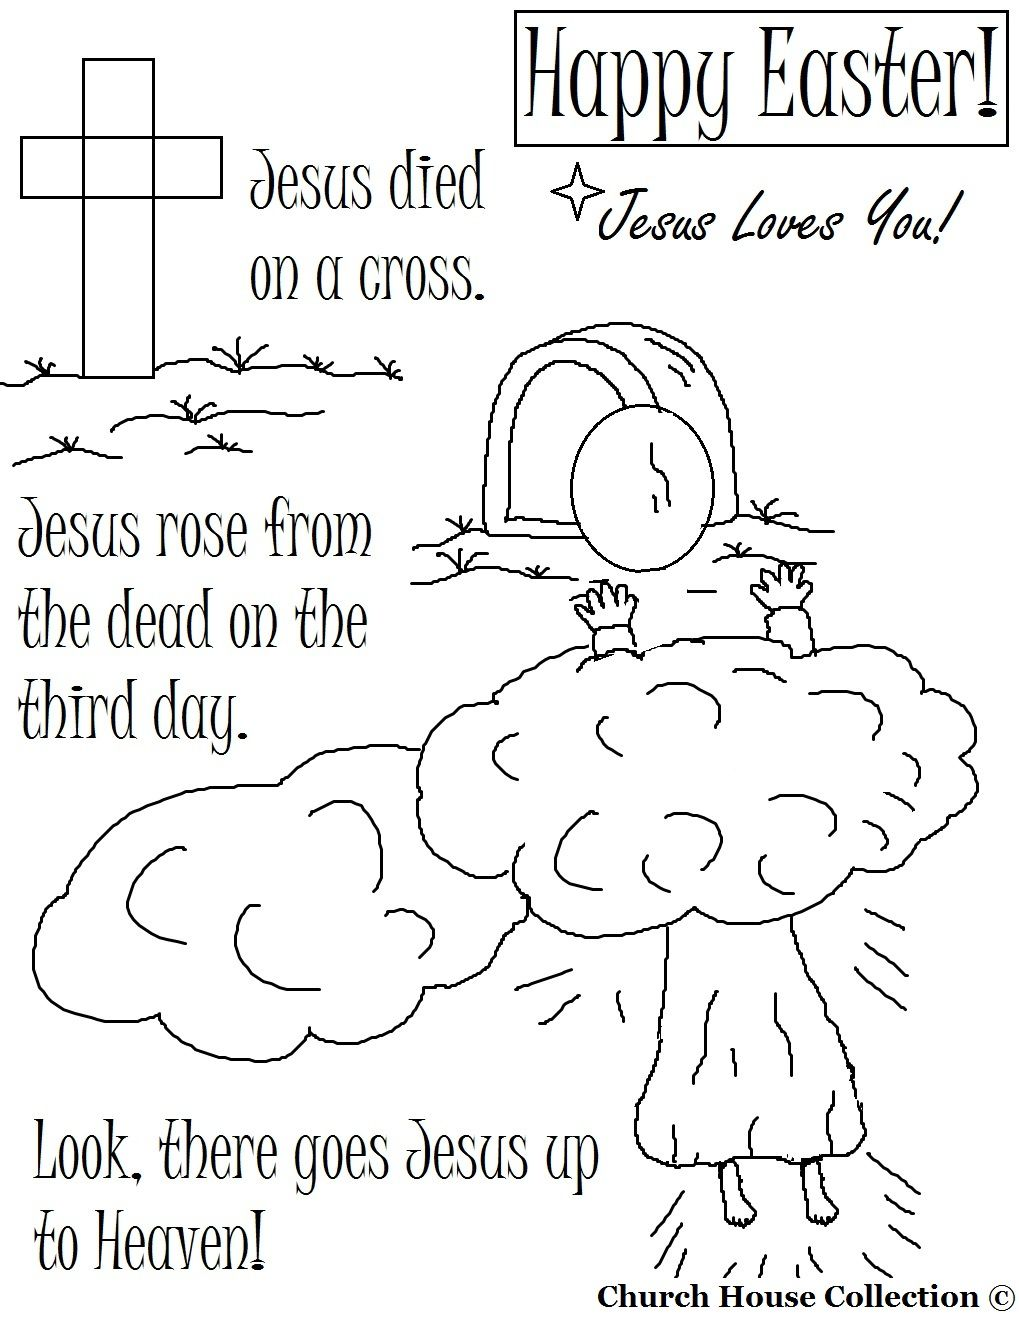 Jesus Easter Resurrection Coloring Pages Jpg 1 019 1 319 Pixels Easter Coloring Pages Printable Sunday School Coloring Pages Christian Coloring